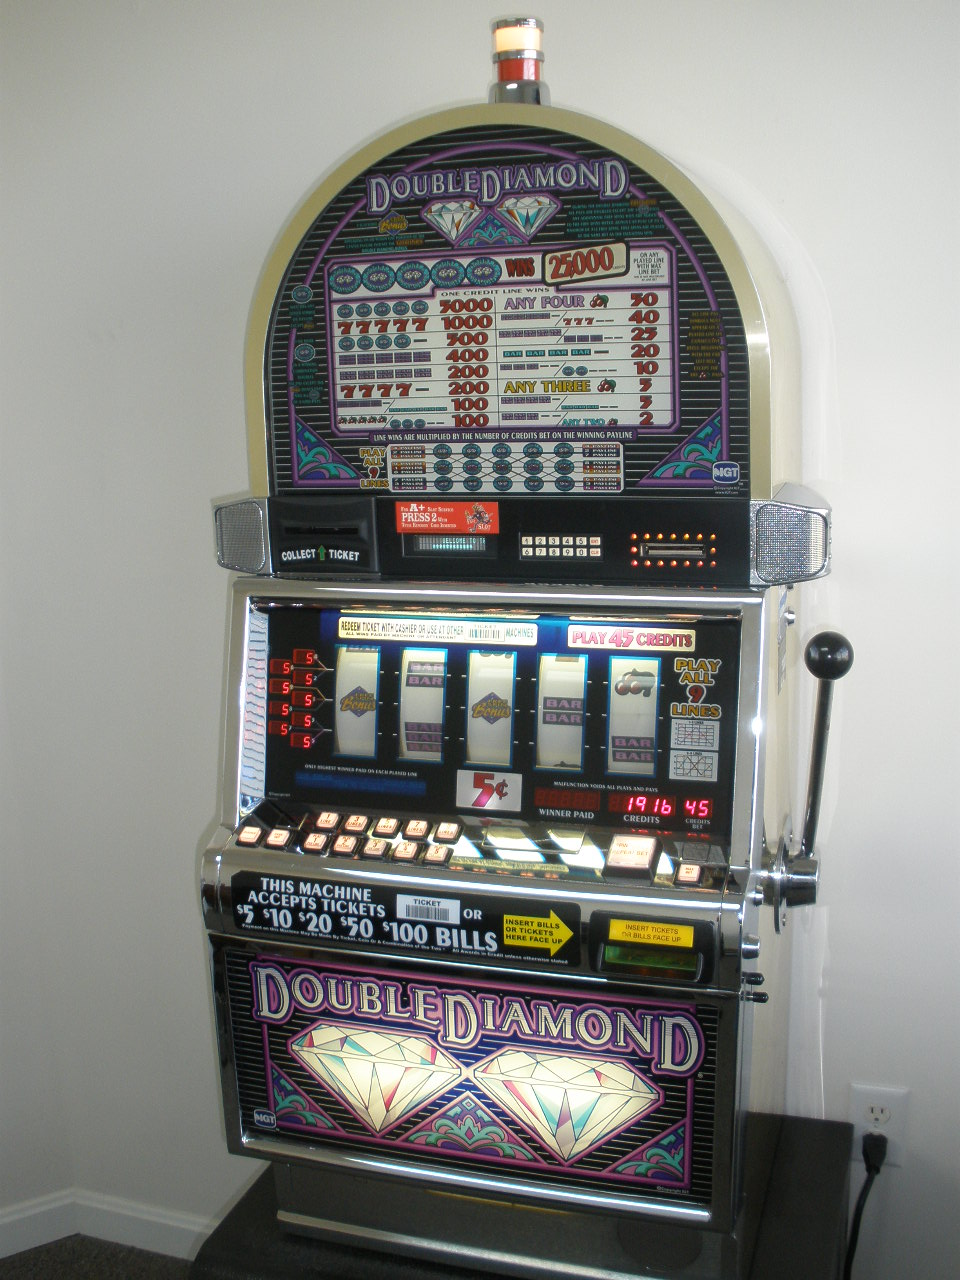 Igt slot machine code 21